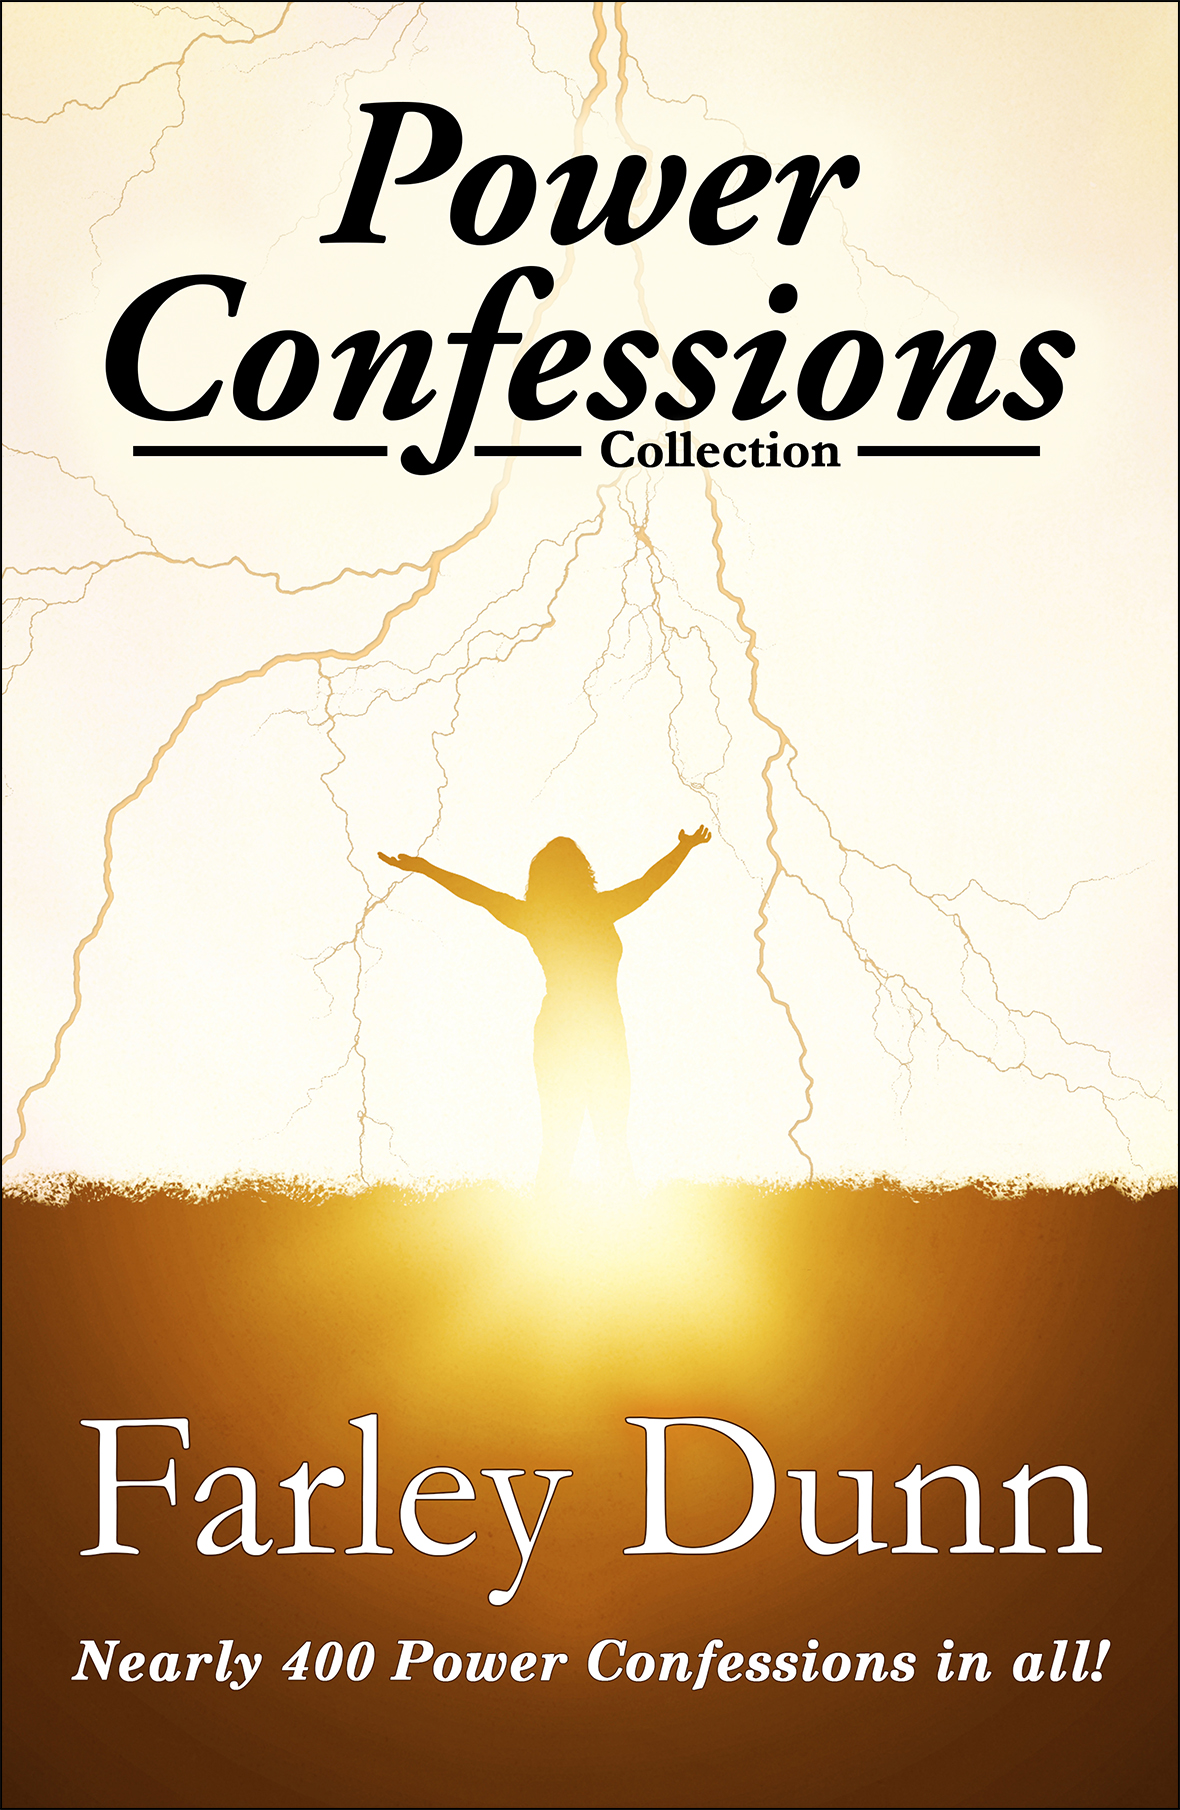 Power Confessions Volume Trilogy Cover V5 reduced for web insertion